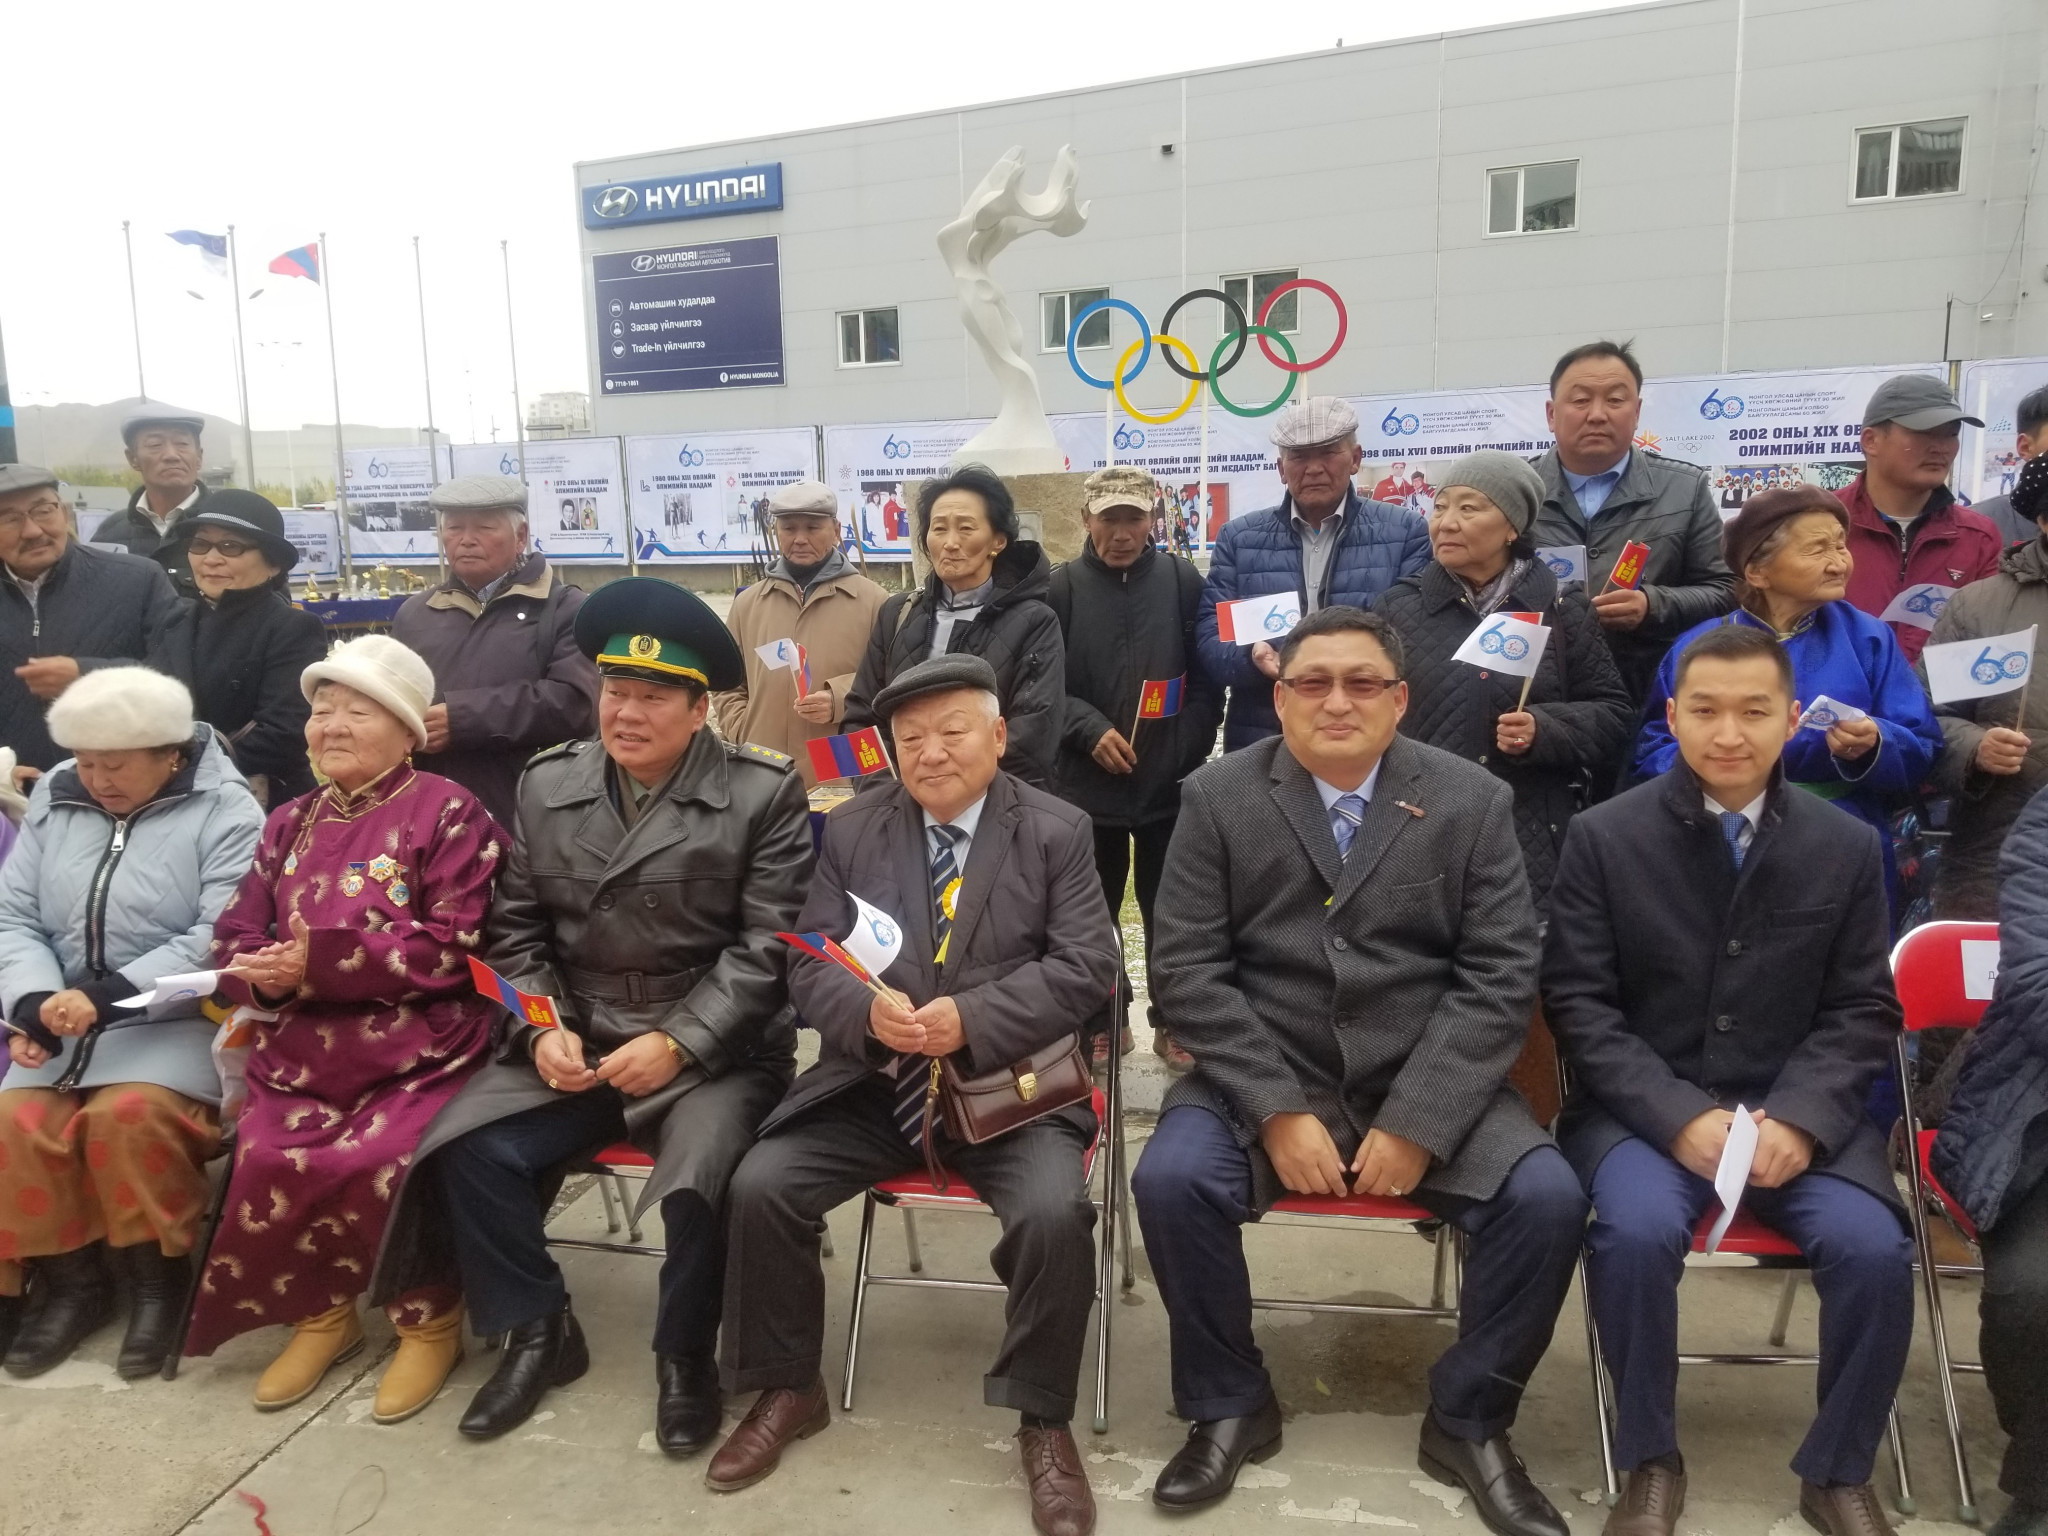 Mongolian NOC co-organises celebration to mark National Ski Federation's 60th anniversary